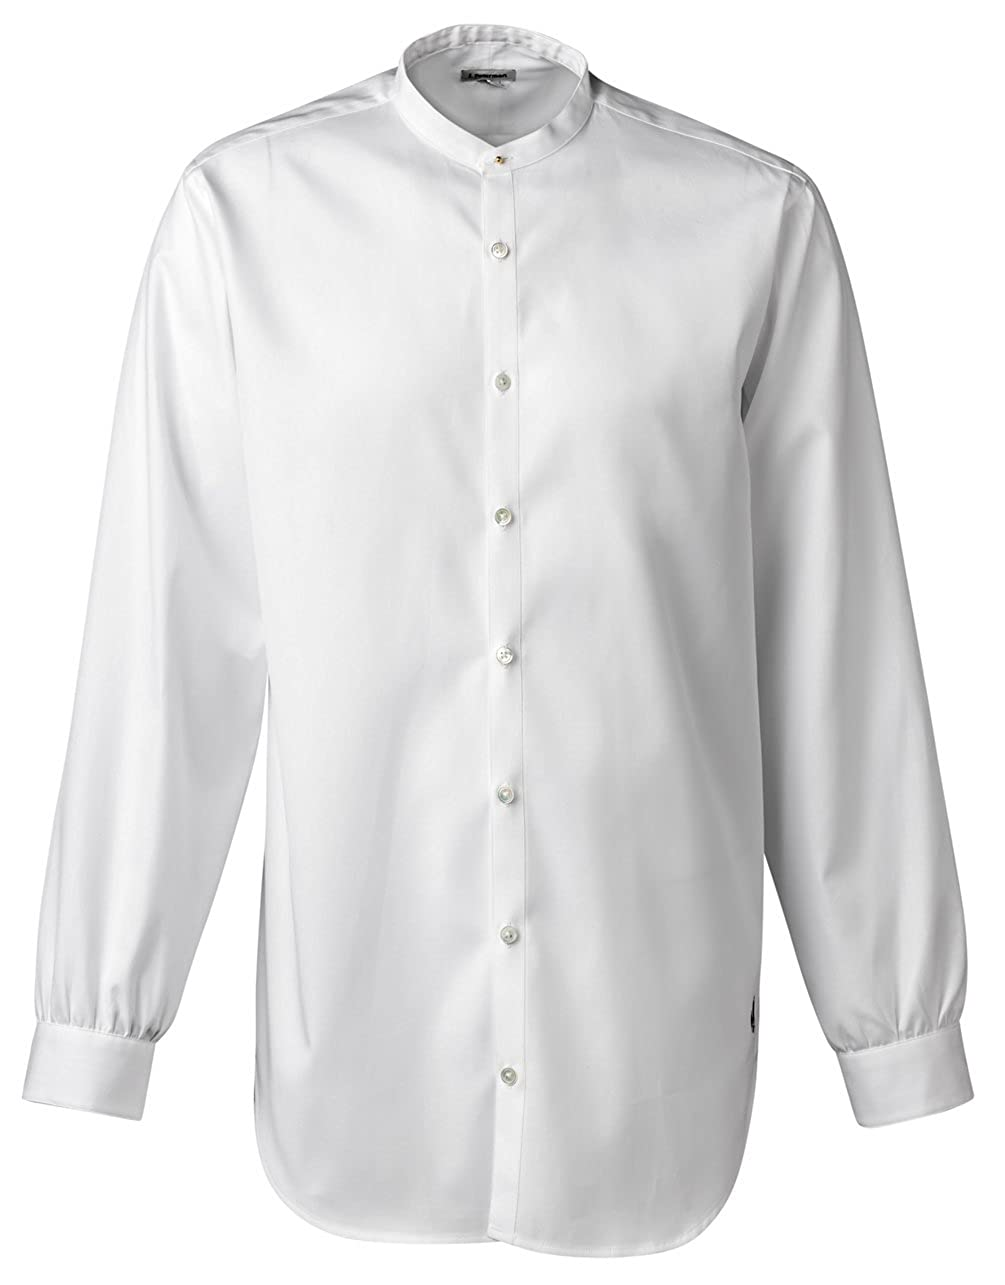 DressinGreatGatsbyClothesforMen Gatsby Shirt $73.60 AT vintagedancer.com